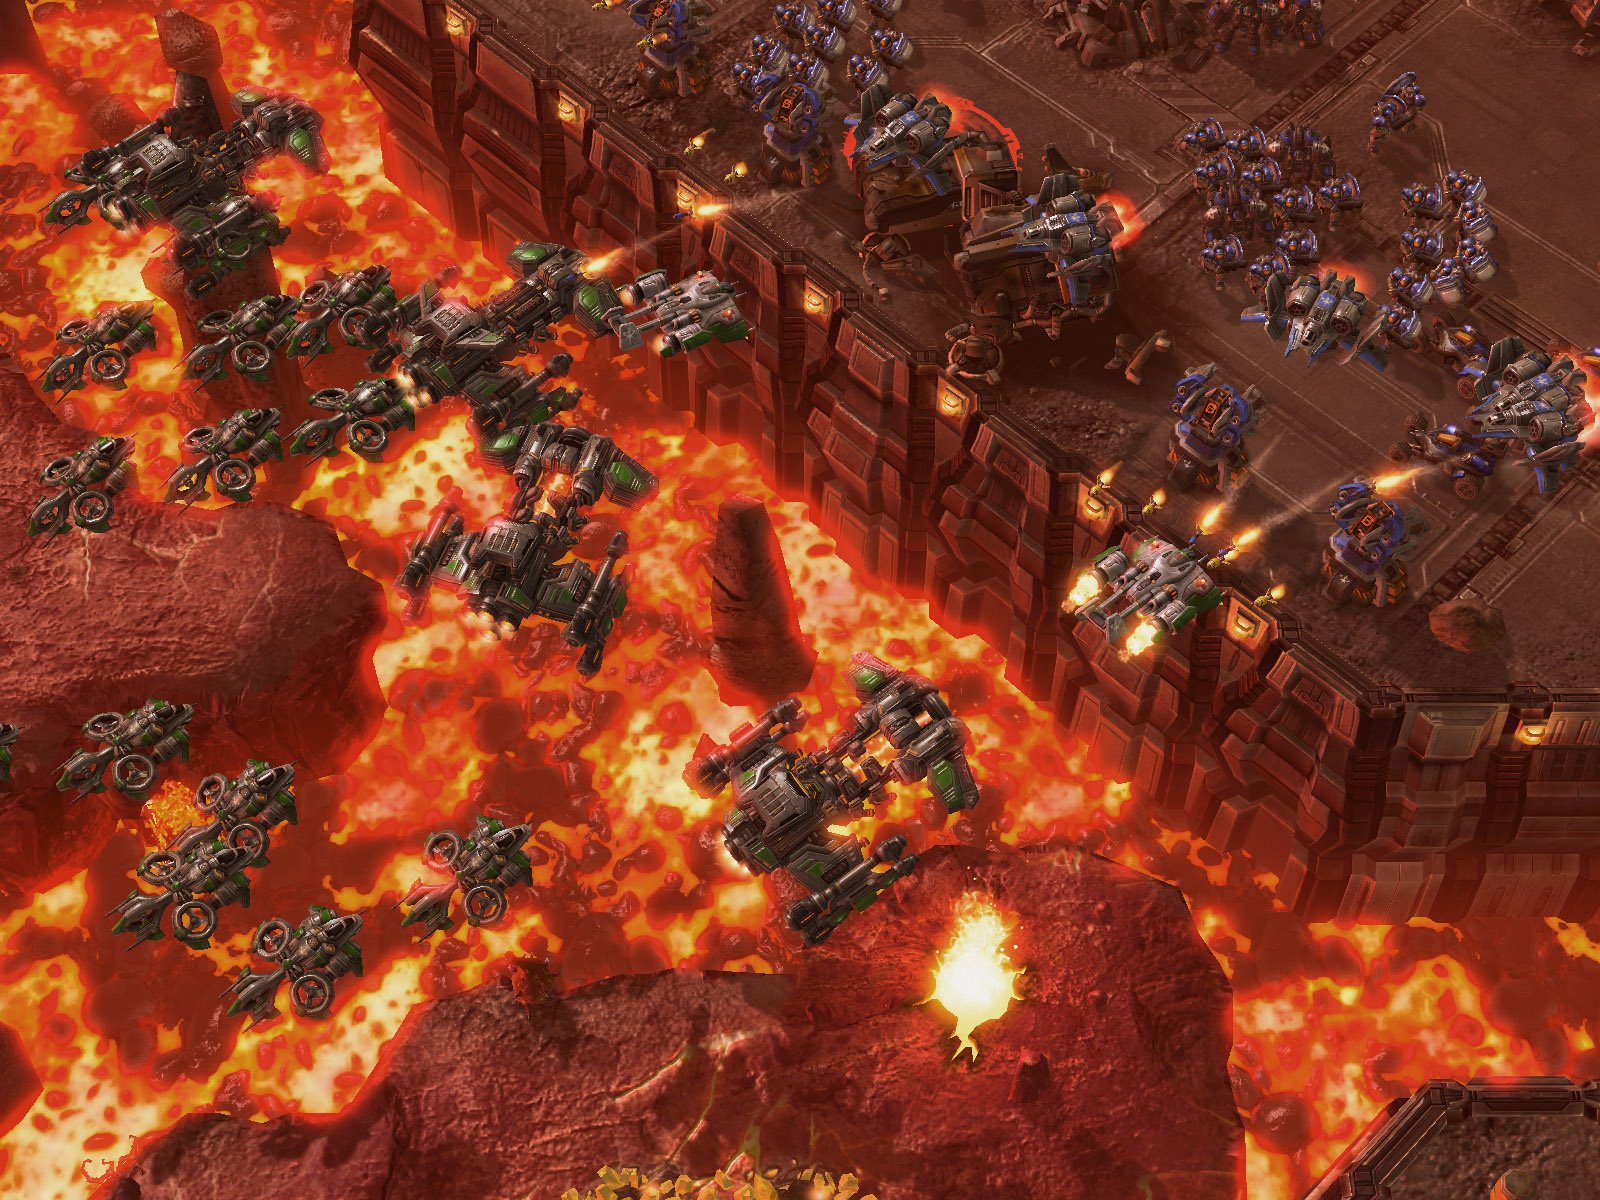 Starcraft II: Wings of Liberty Collector's Edition - PC by Blizzard Entertainment (Image #6)